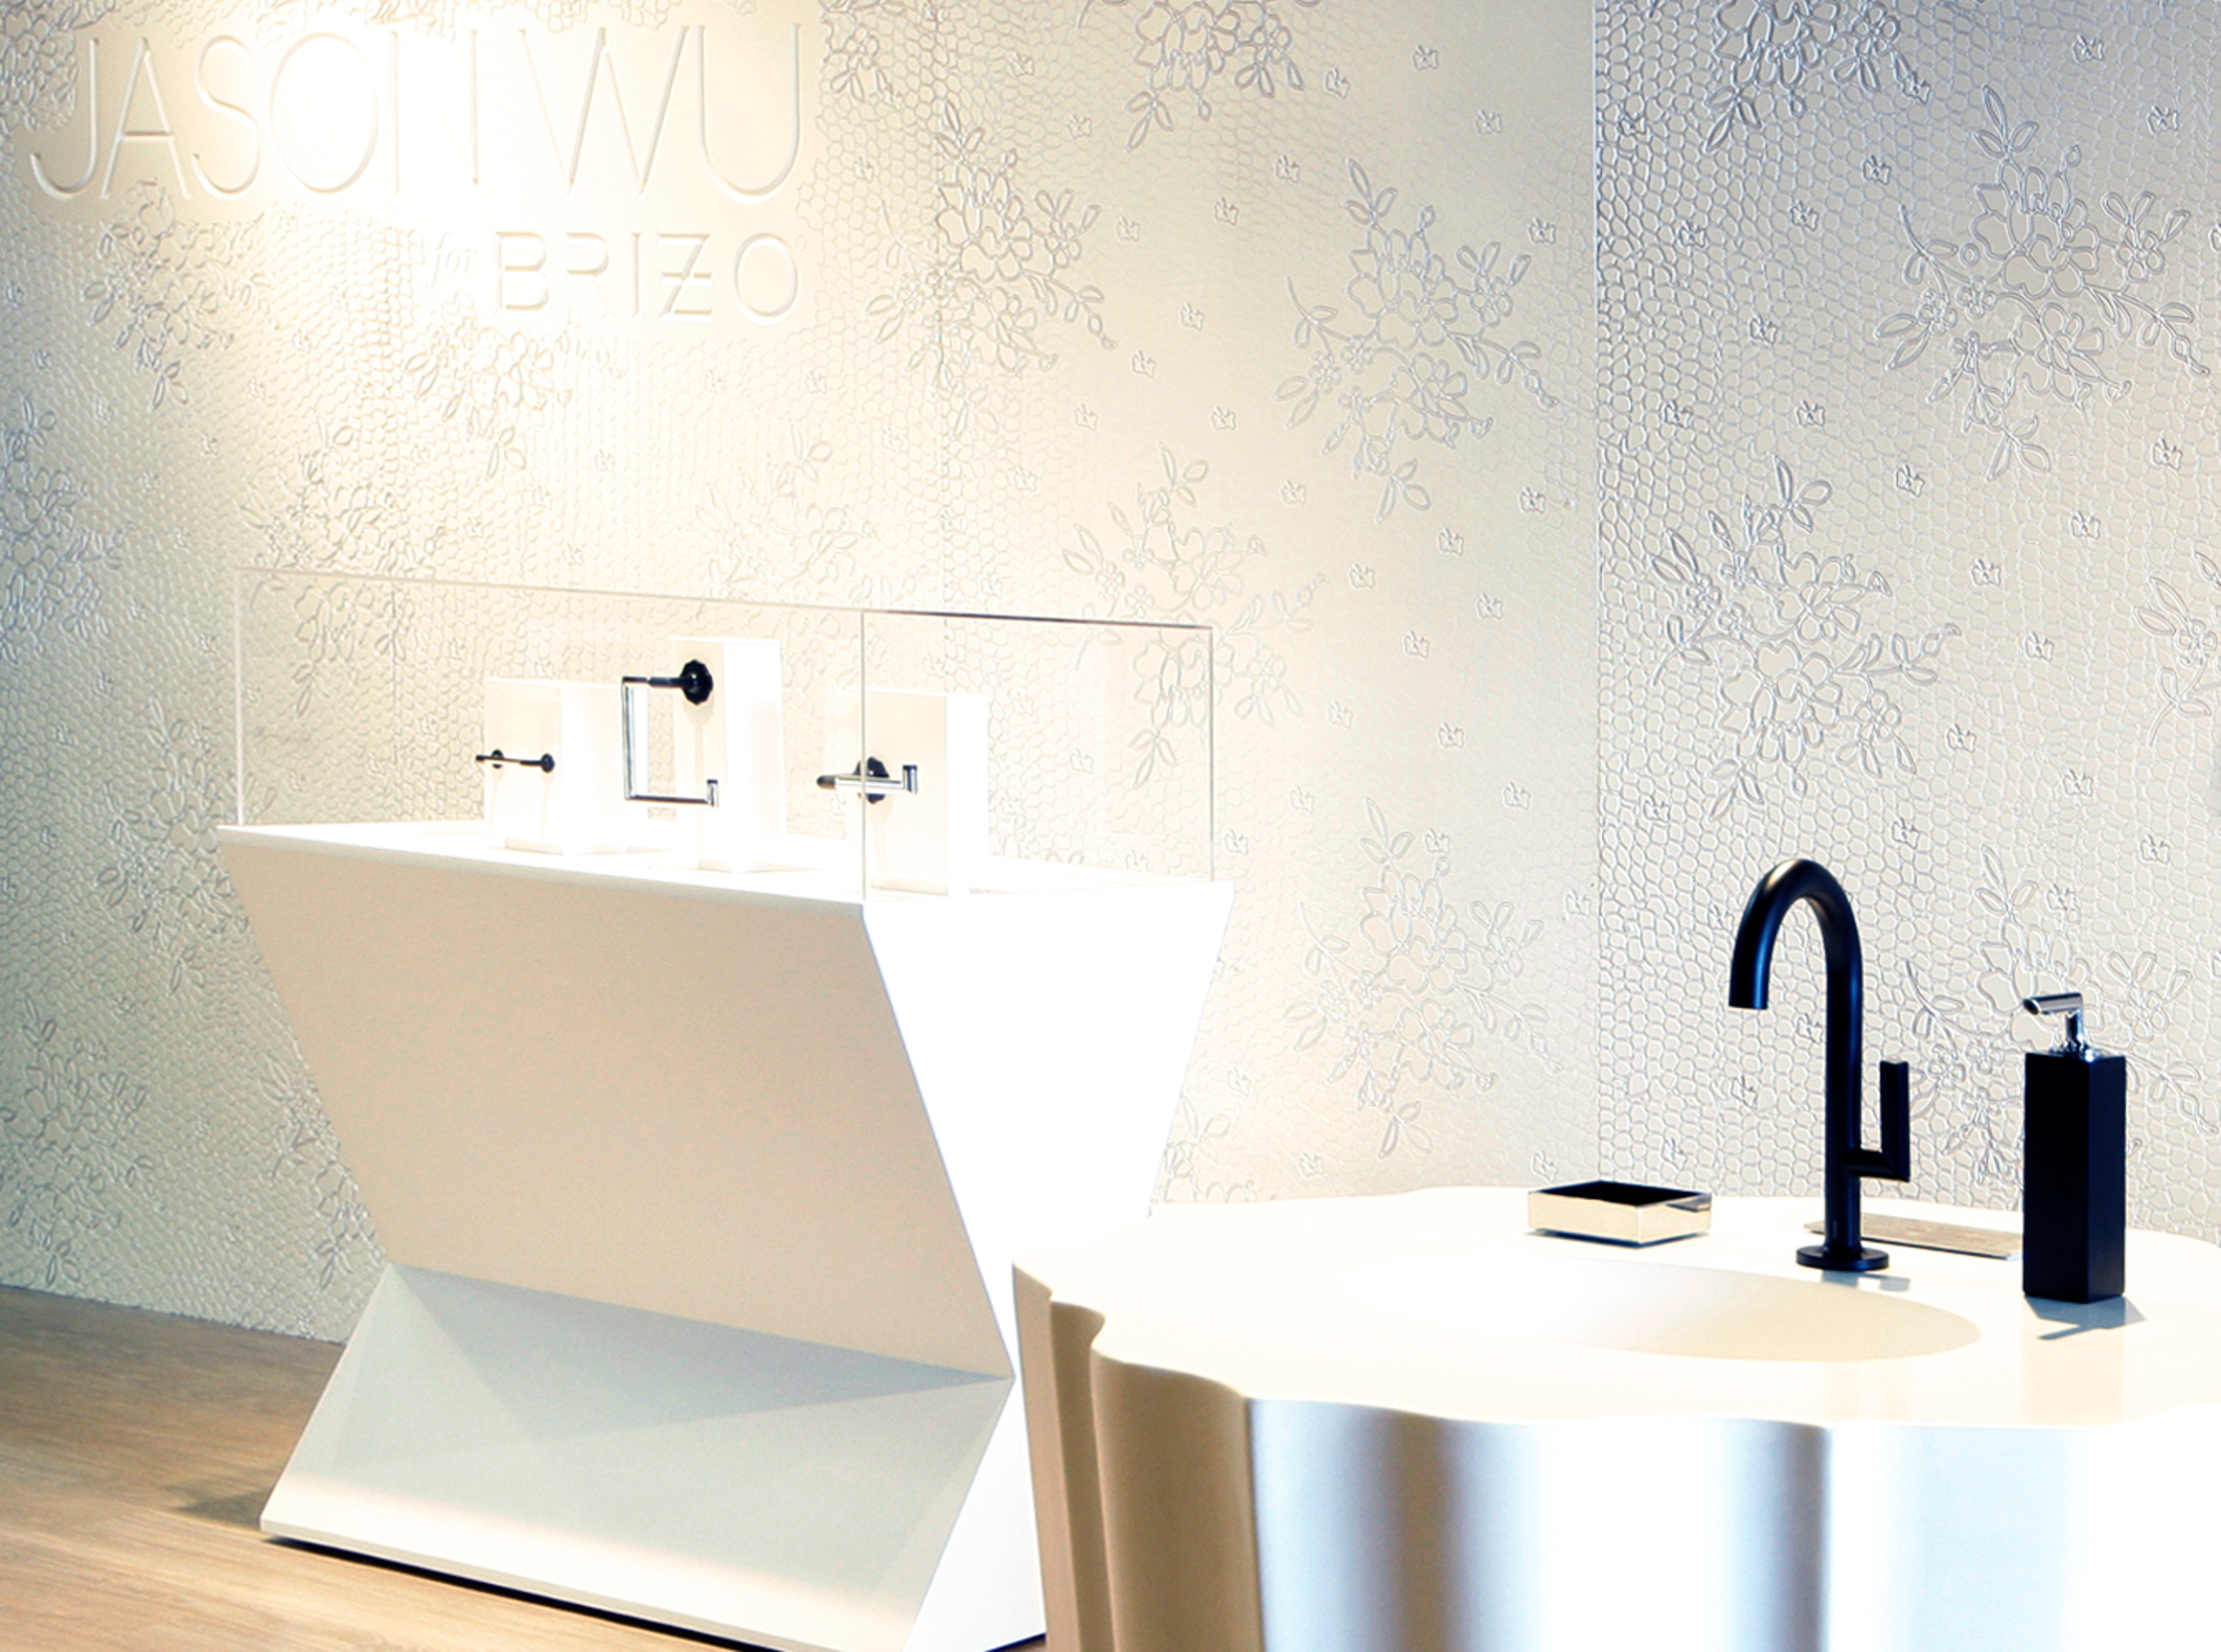 Brizo Jason Wu collection minimal modern bathroom   showroom with black fixtures